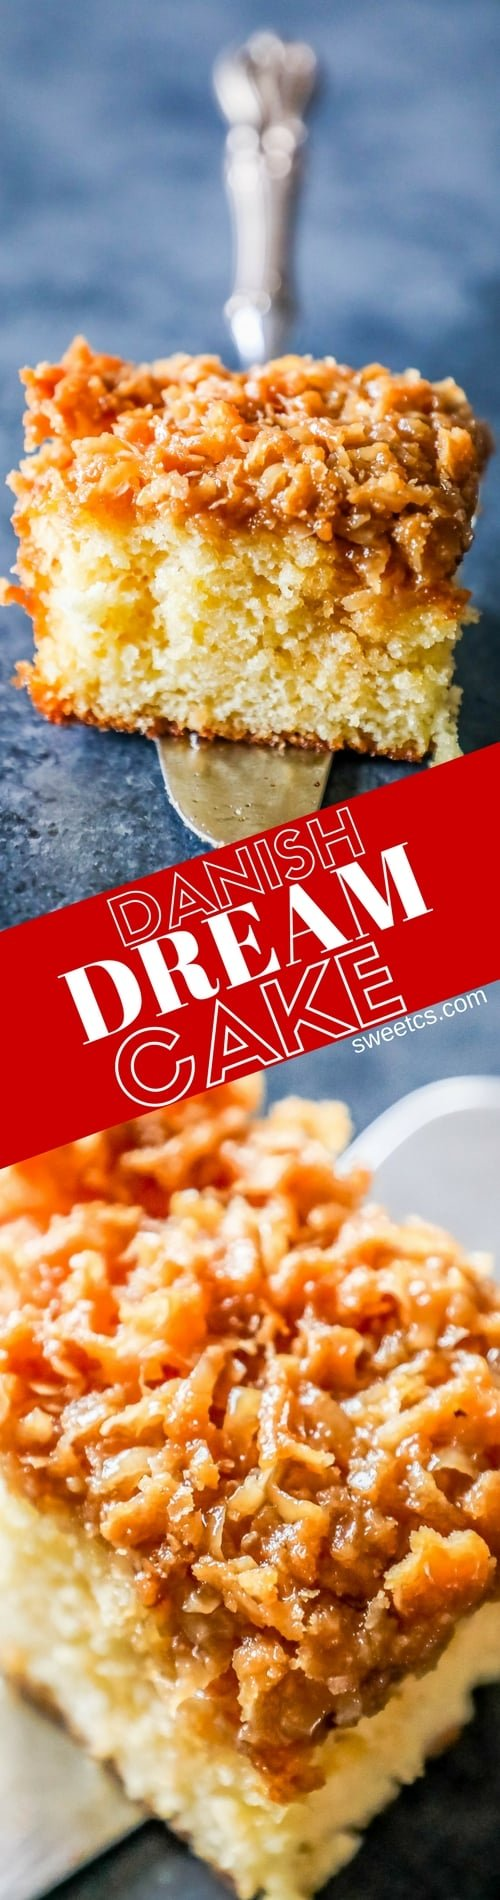 how to make danish dream cake